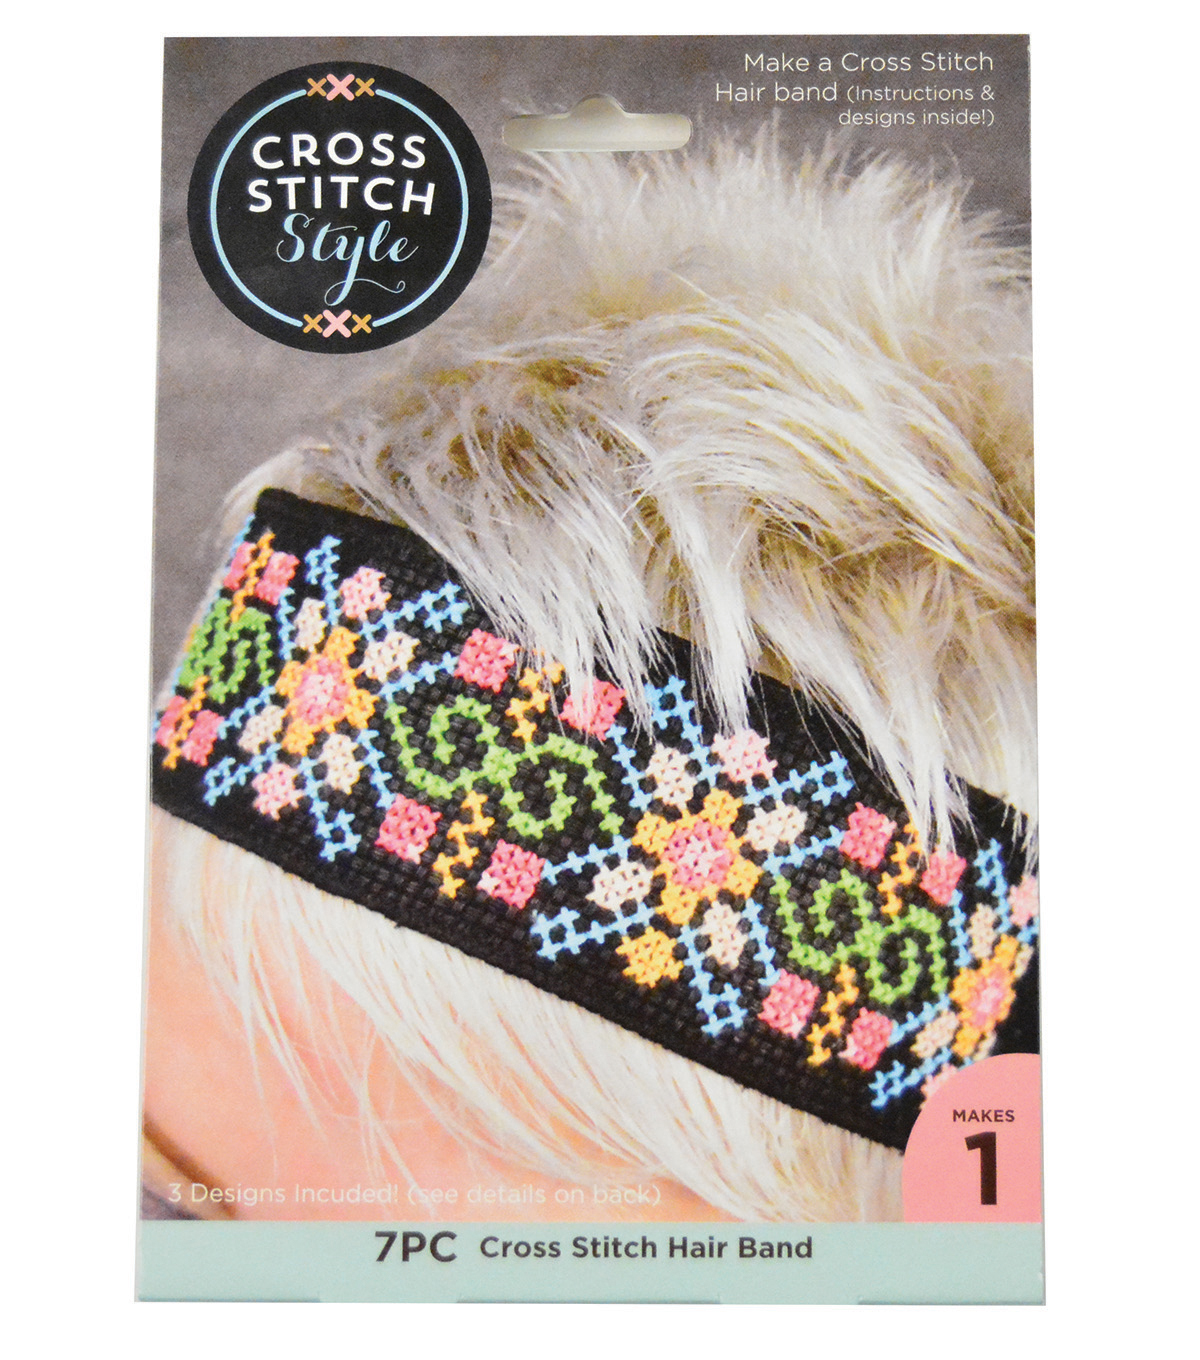 Cross Stitch Style Cross Stitch Hair Band